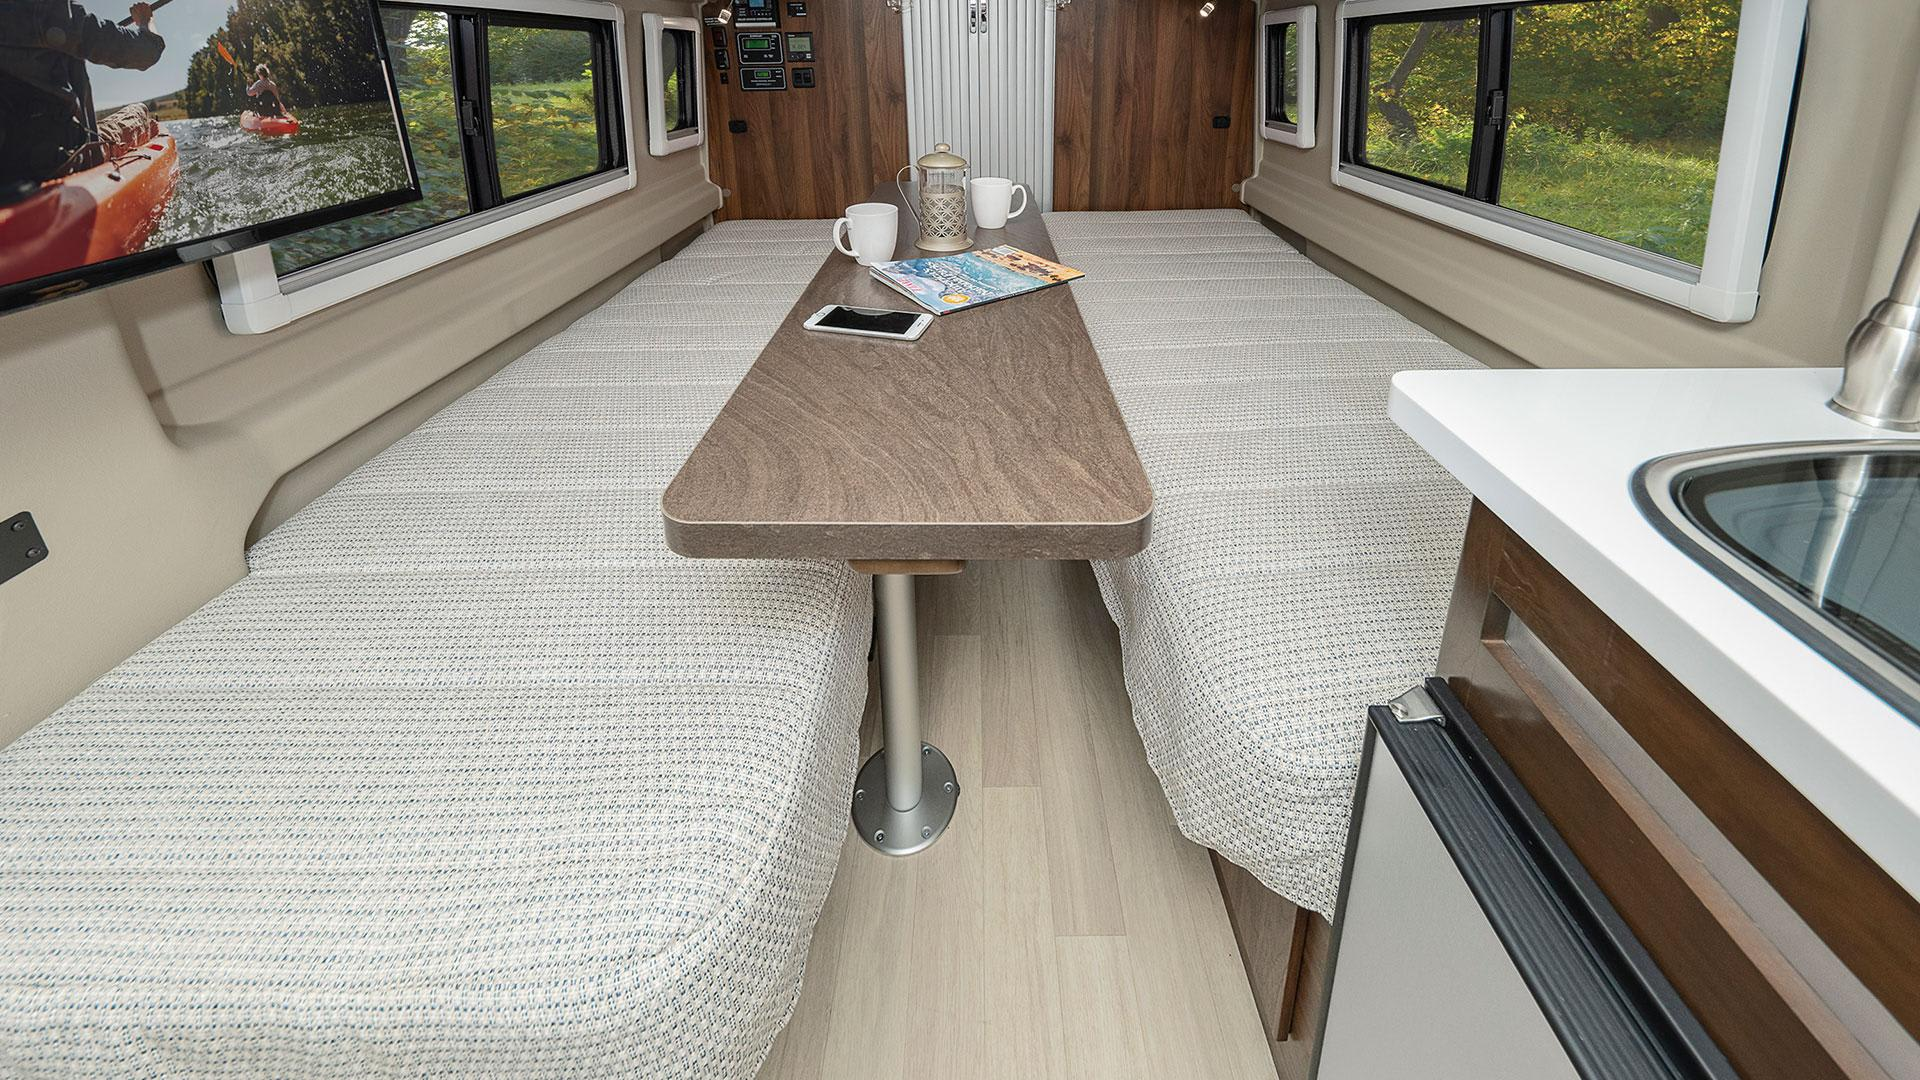 This is the table that came with the van.. Winnebago Travato 2019